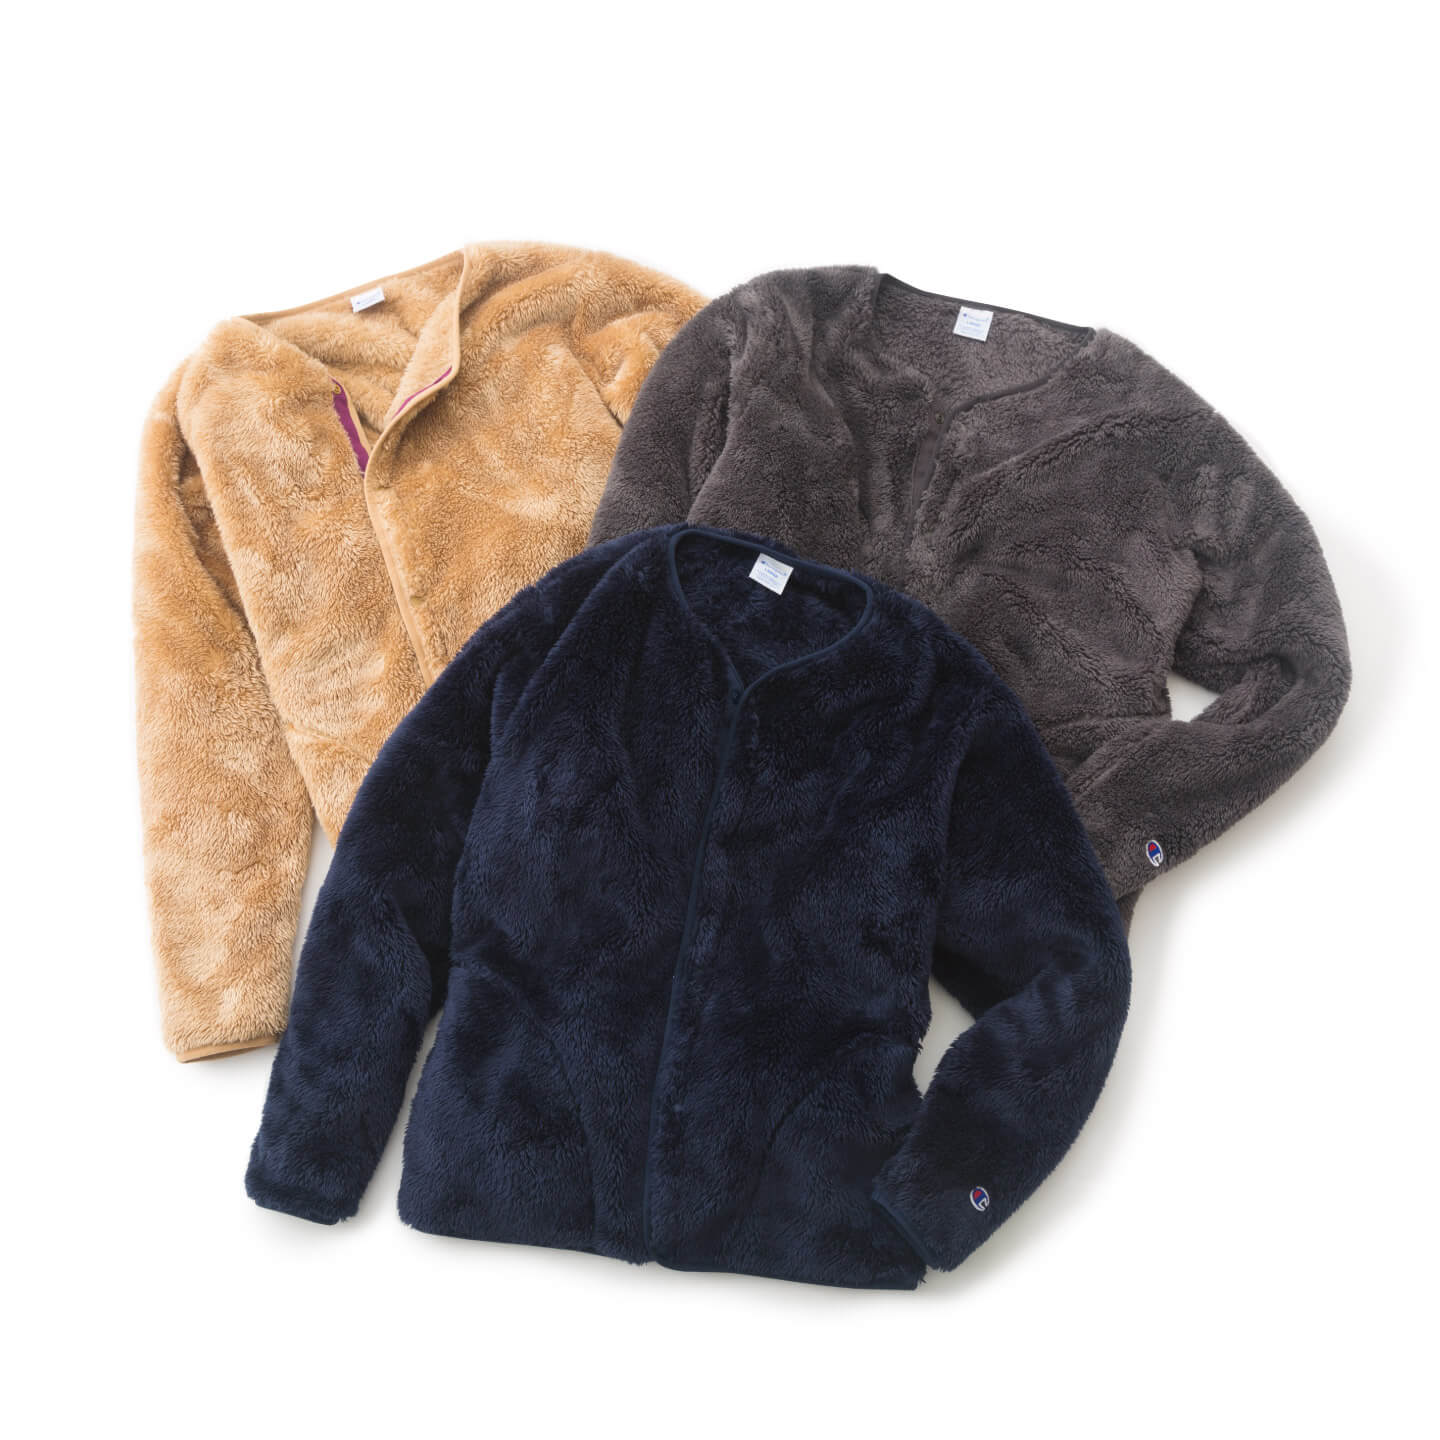 別注 SHERPA FLEECE CARDIGAN 全体写真